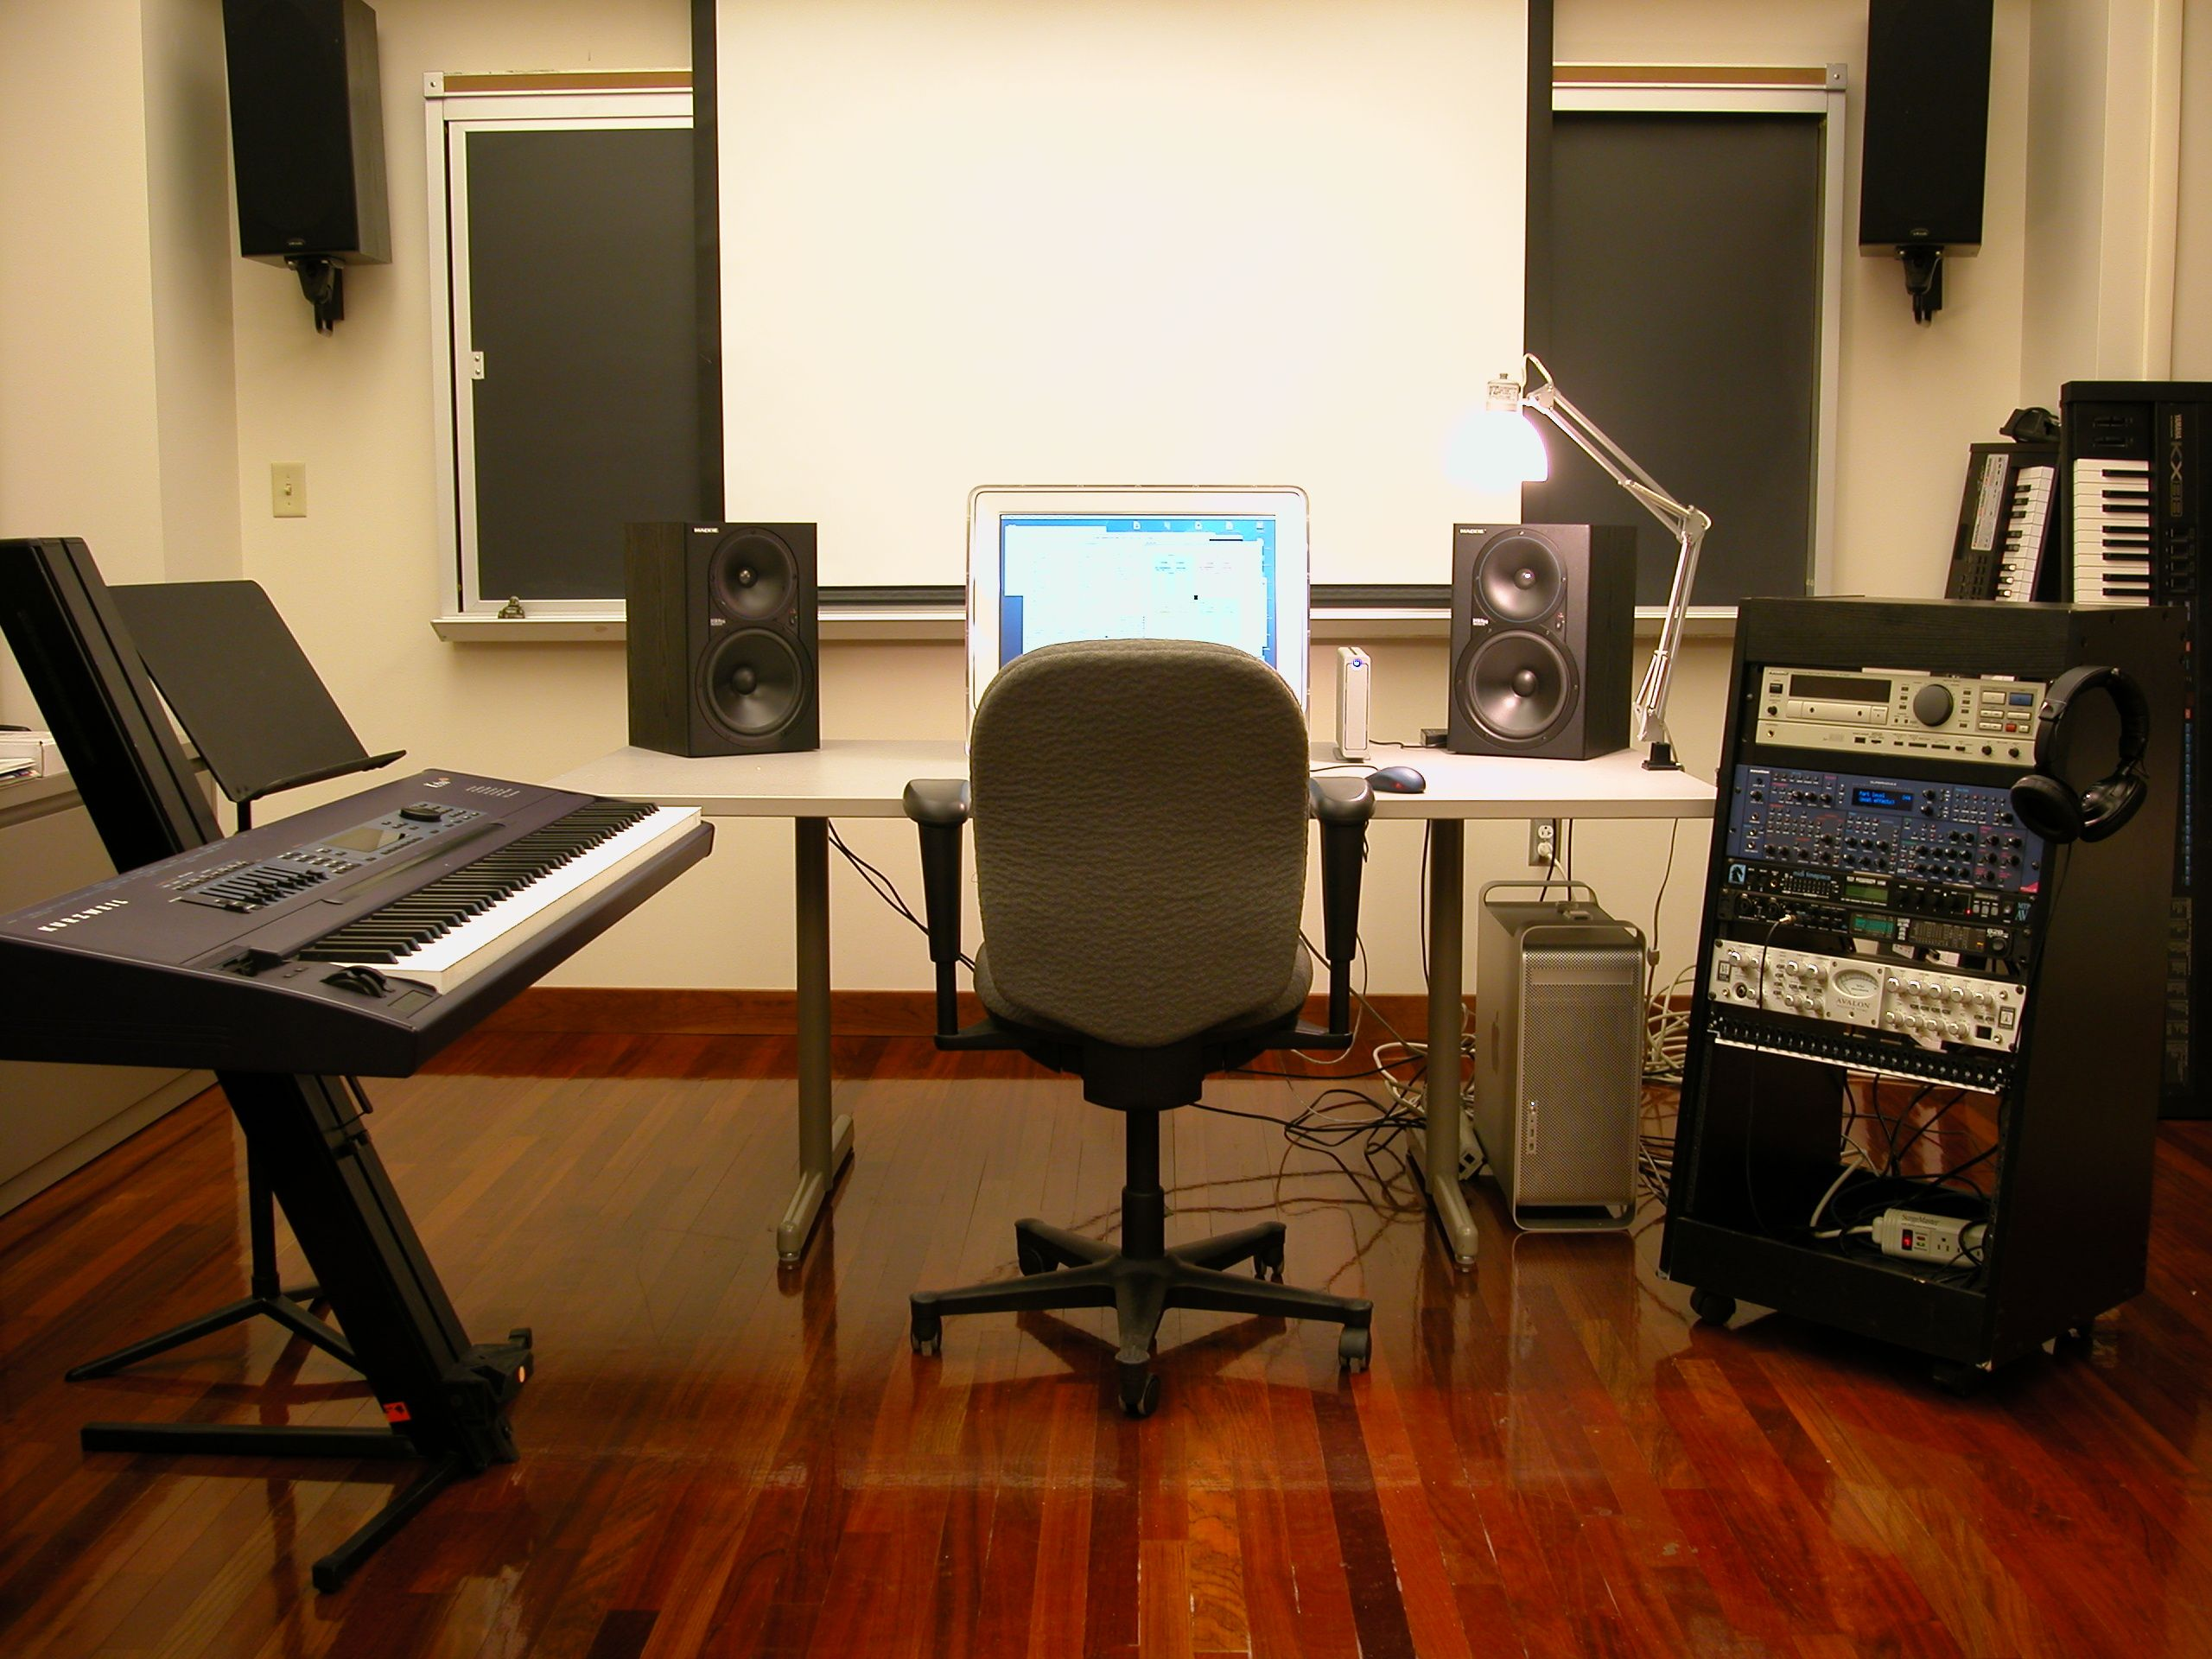 1000 images about home recording studio design on pinterest 1000 images about home recording studio design